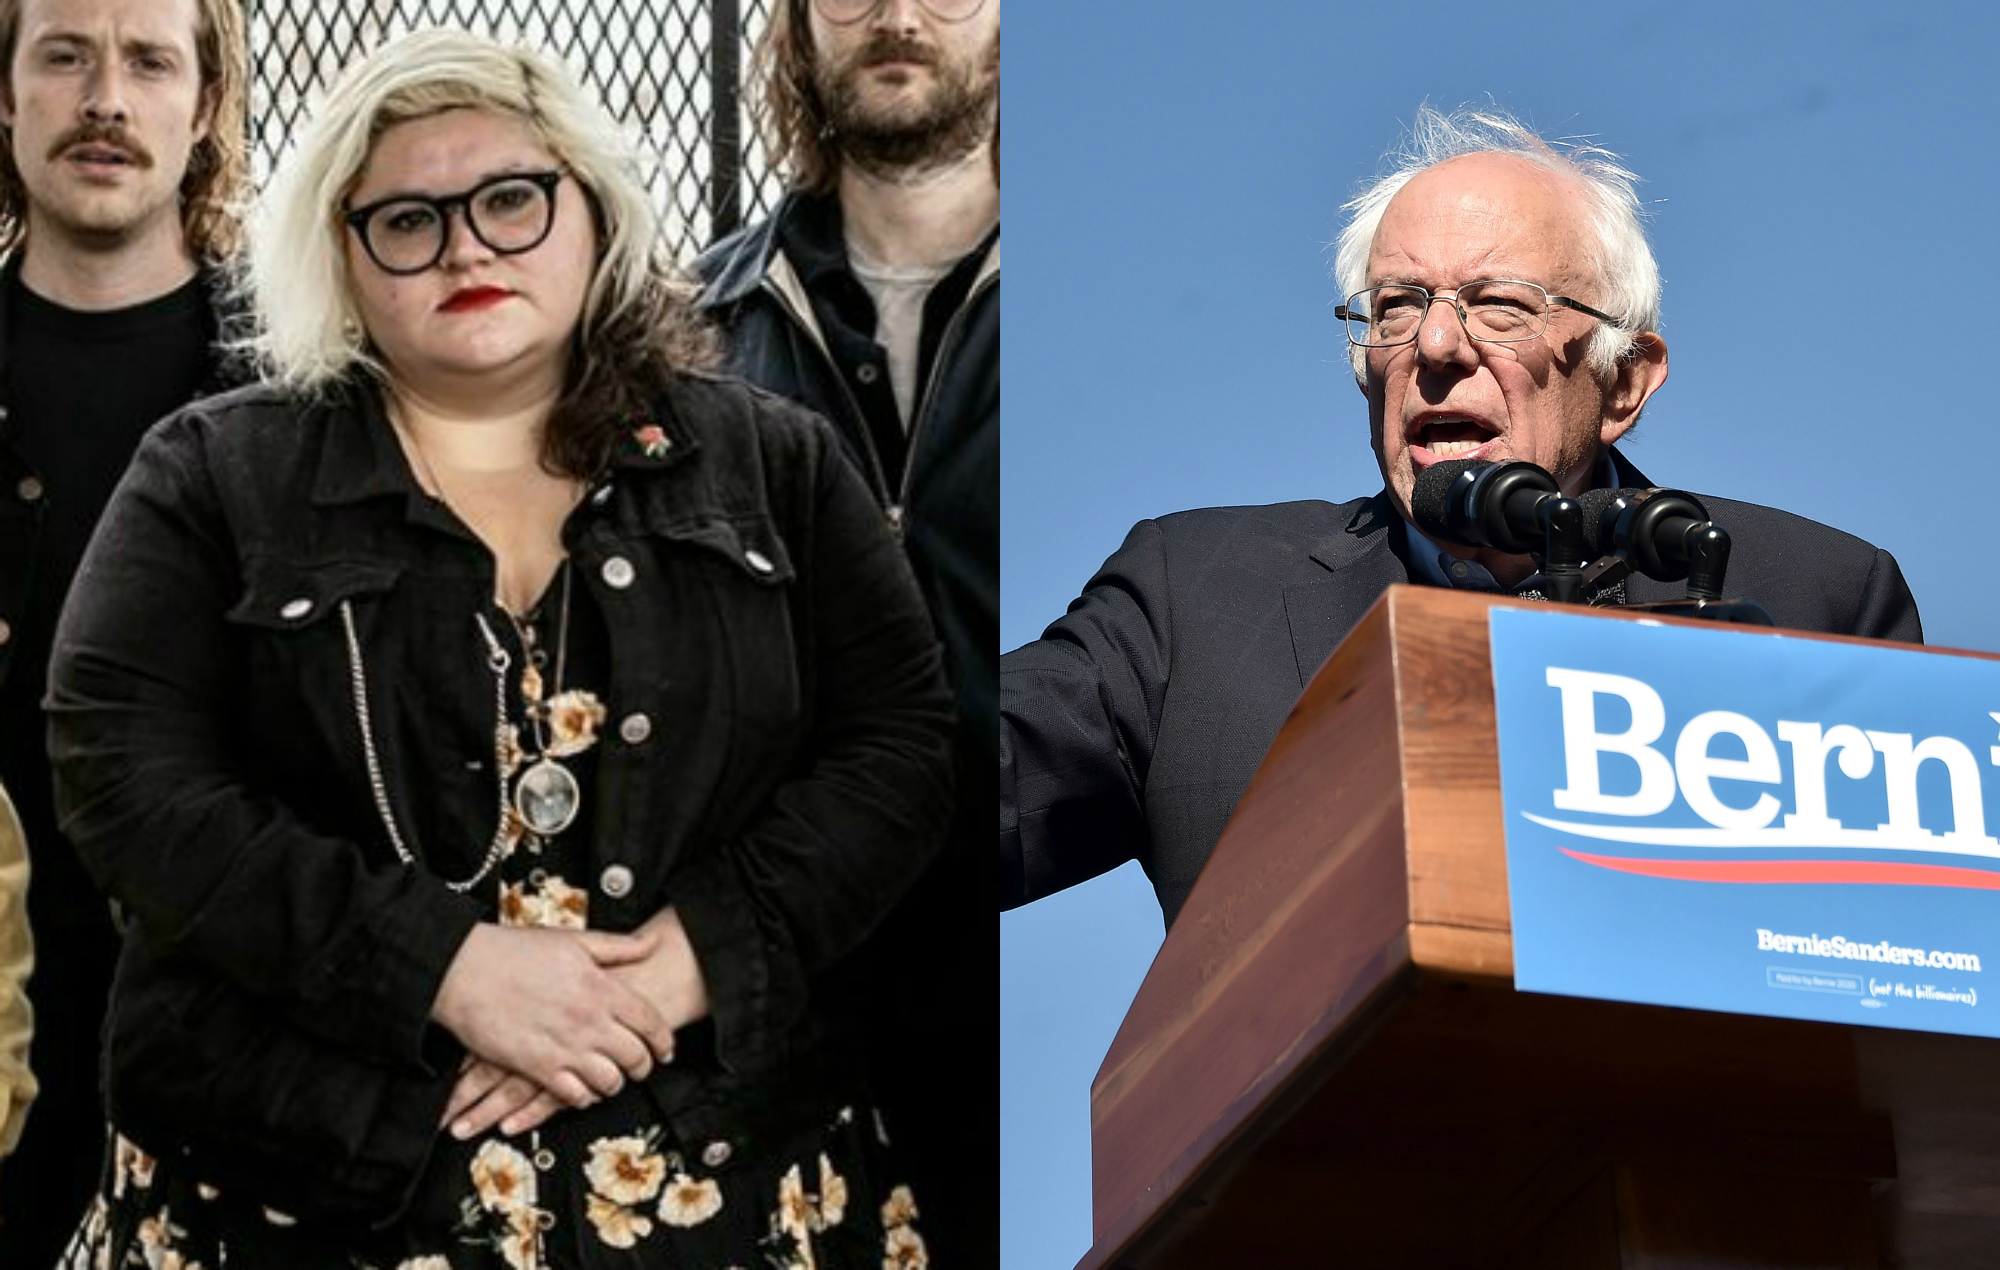 Sheer Mag respond after Bernie Sanders played 'Expect The Bayonet' at New York rally